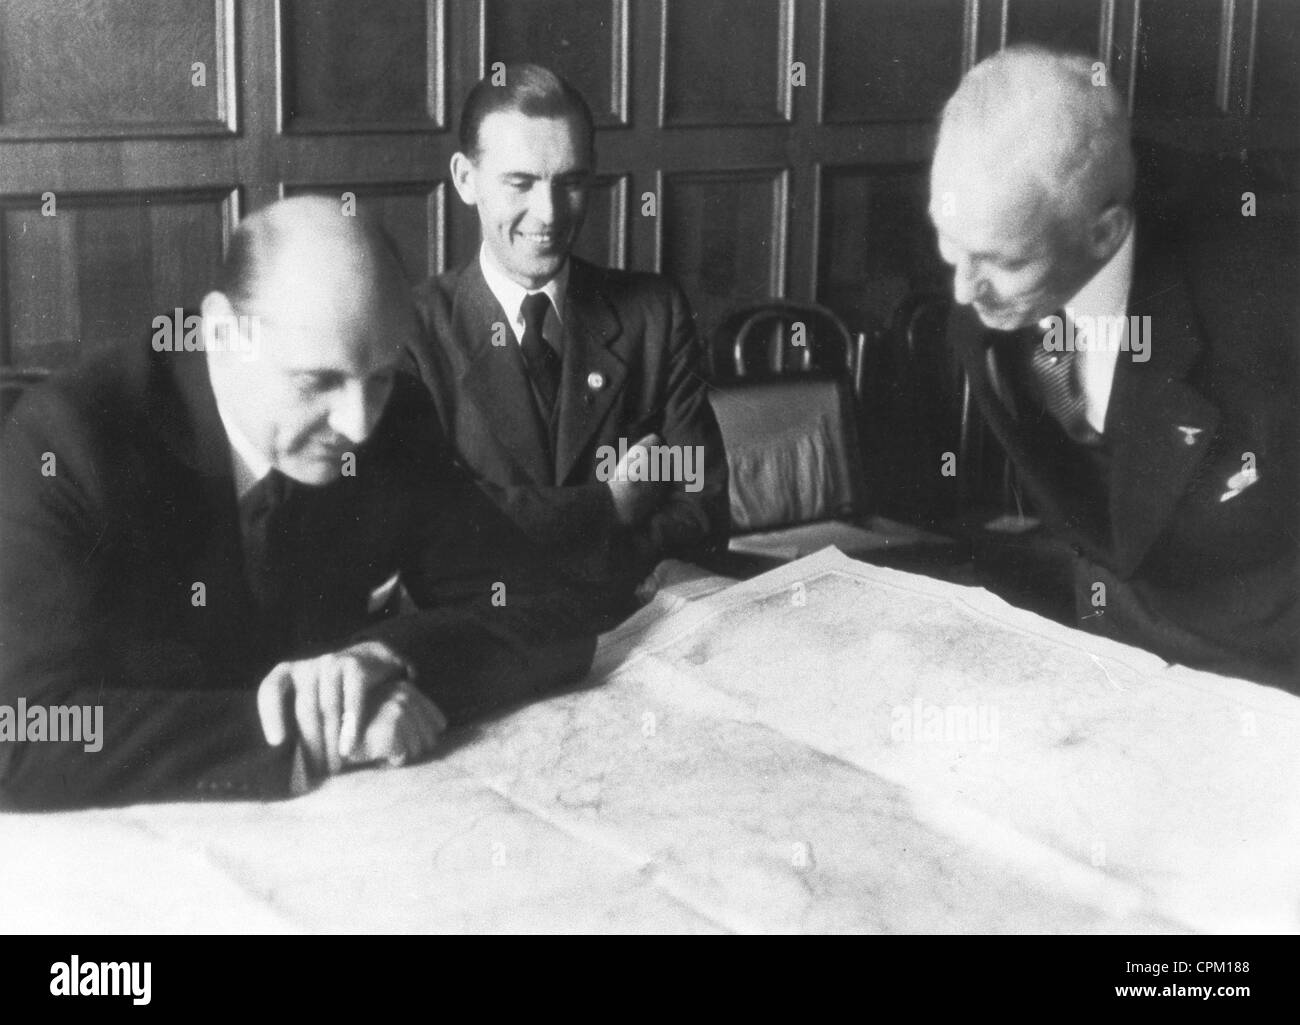 Determination of the Russian-German demarcation line in Poland, 1939 - Stock Image